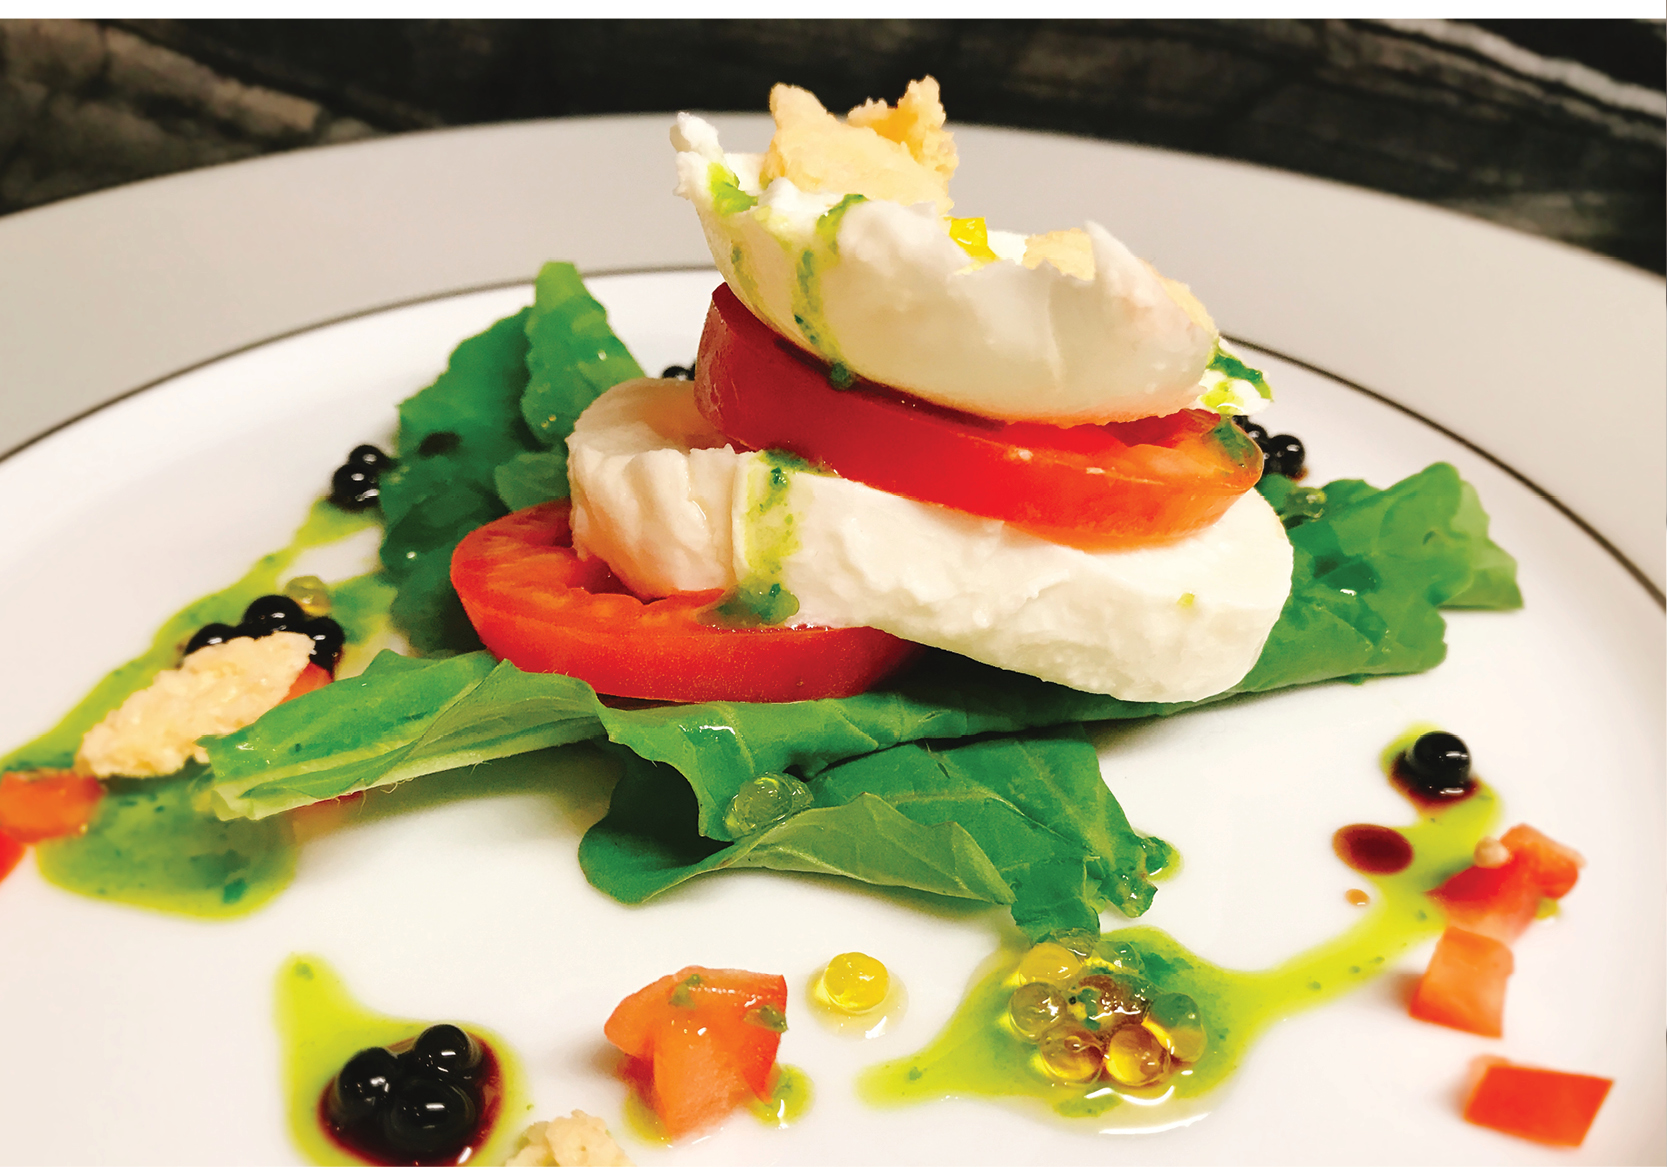 Caprese Salad - Mozzarella, Wild Rocket, Roma Tomatos and Balsamic and Olive Oil Pearls